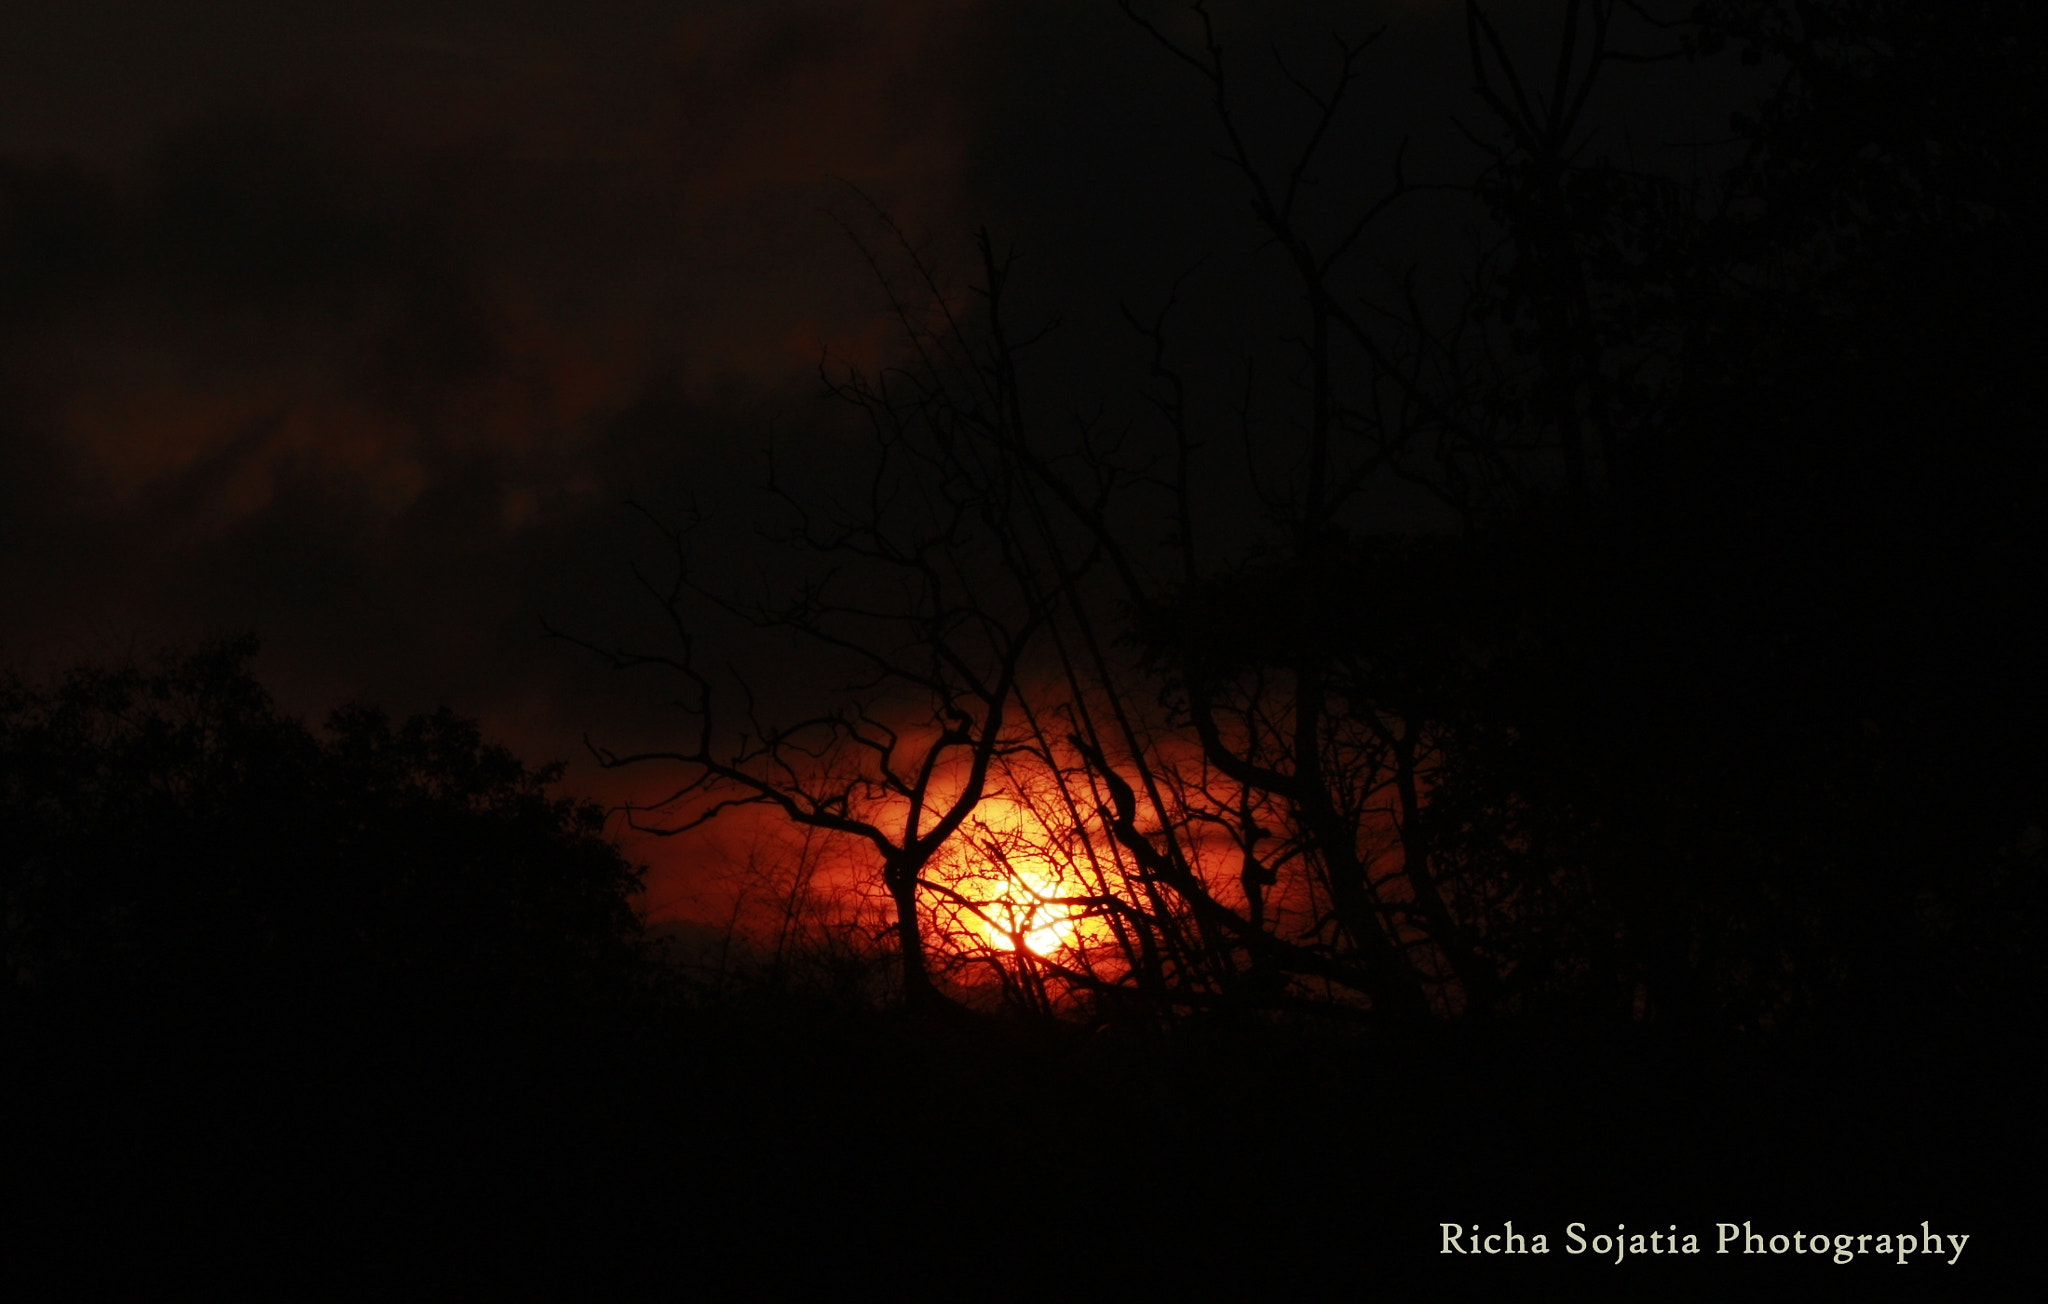 Photograph an african sunset type sunset :D  by richa  sojatia on 500px